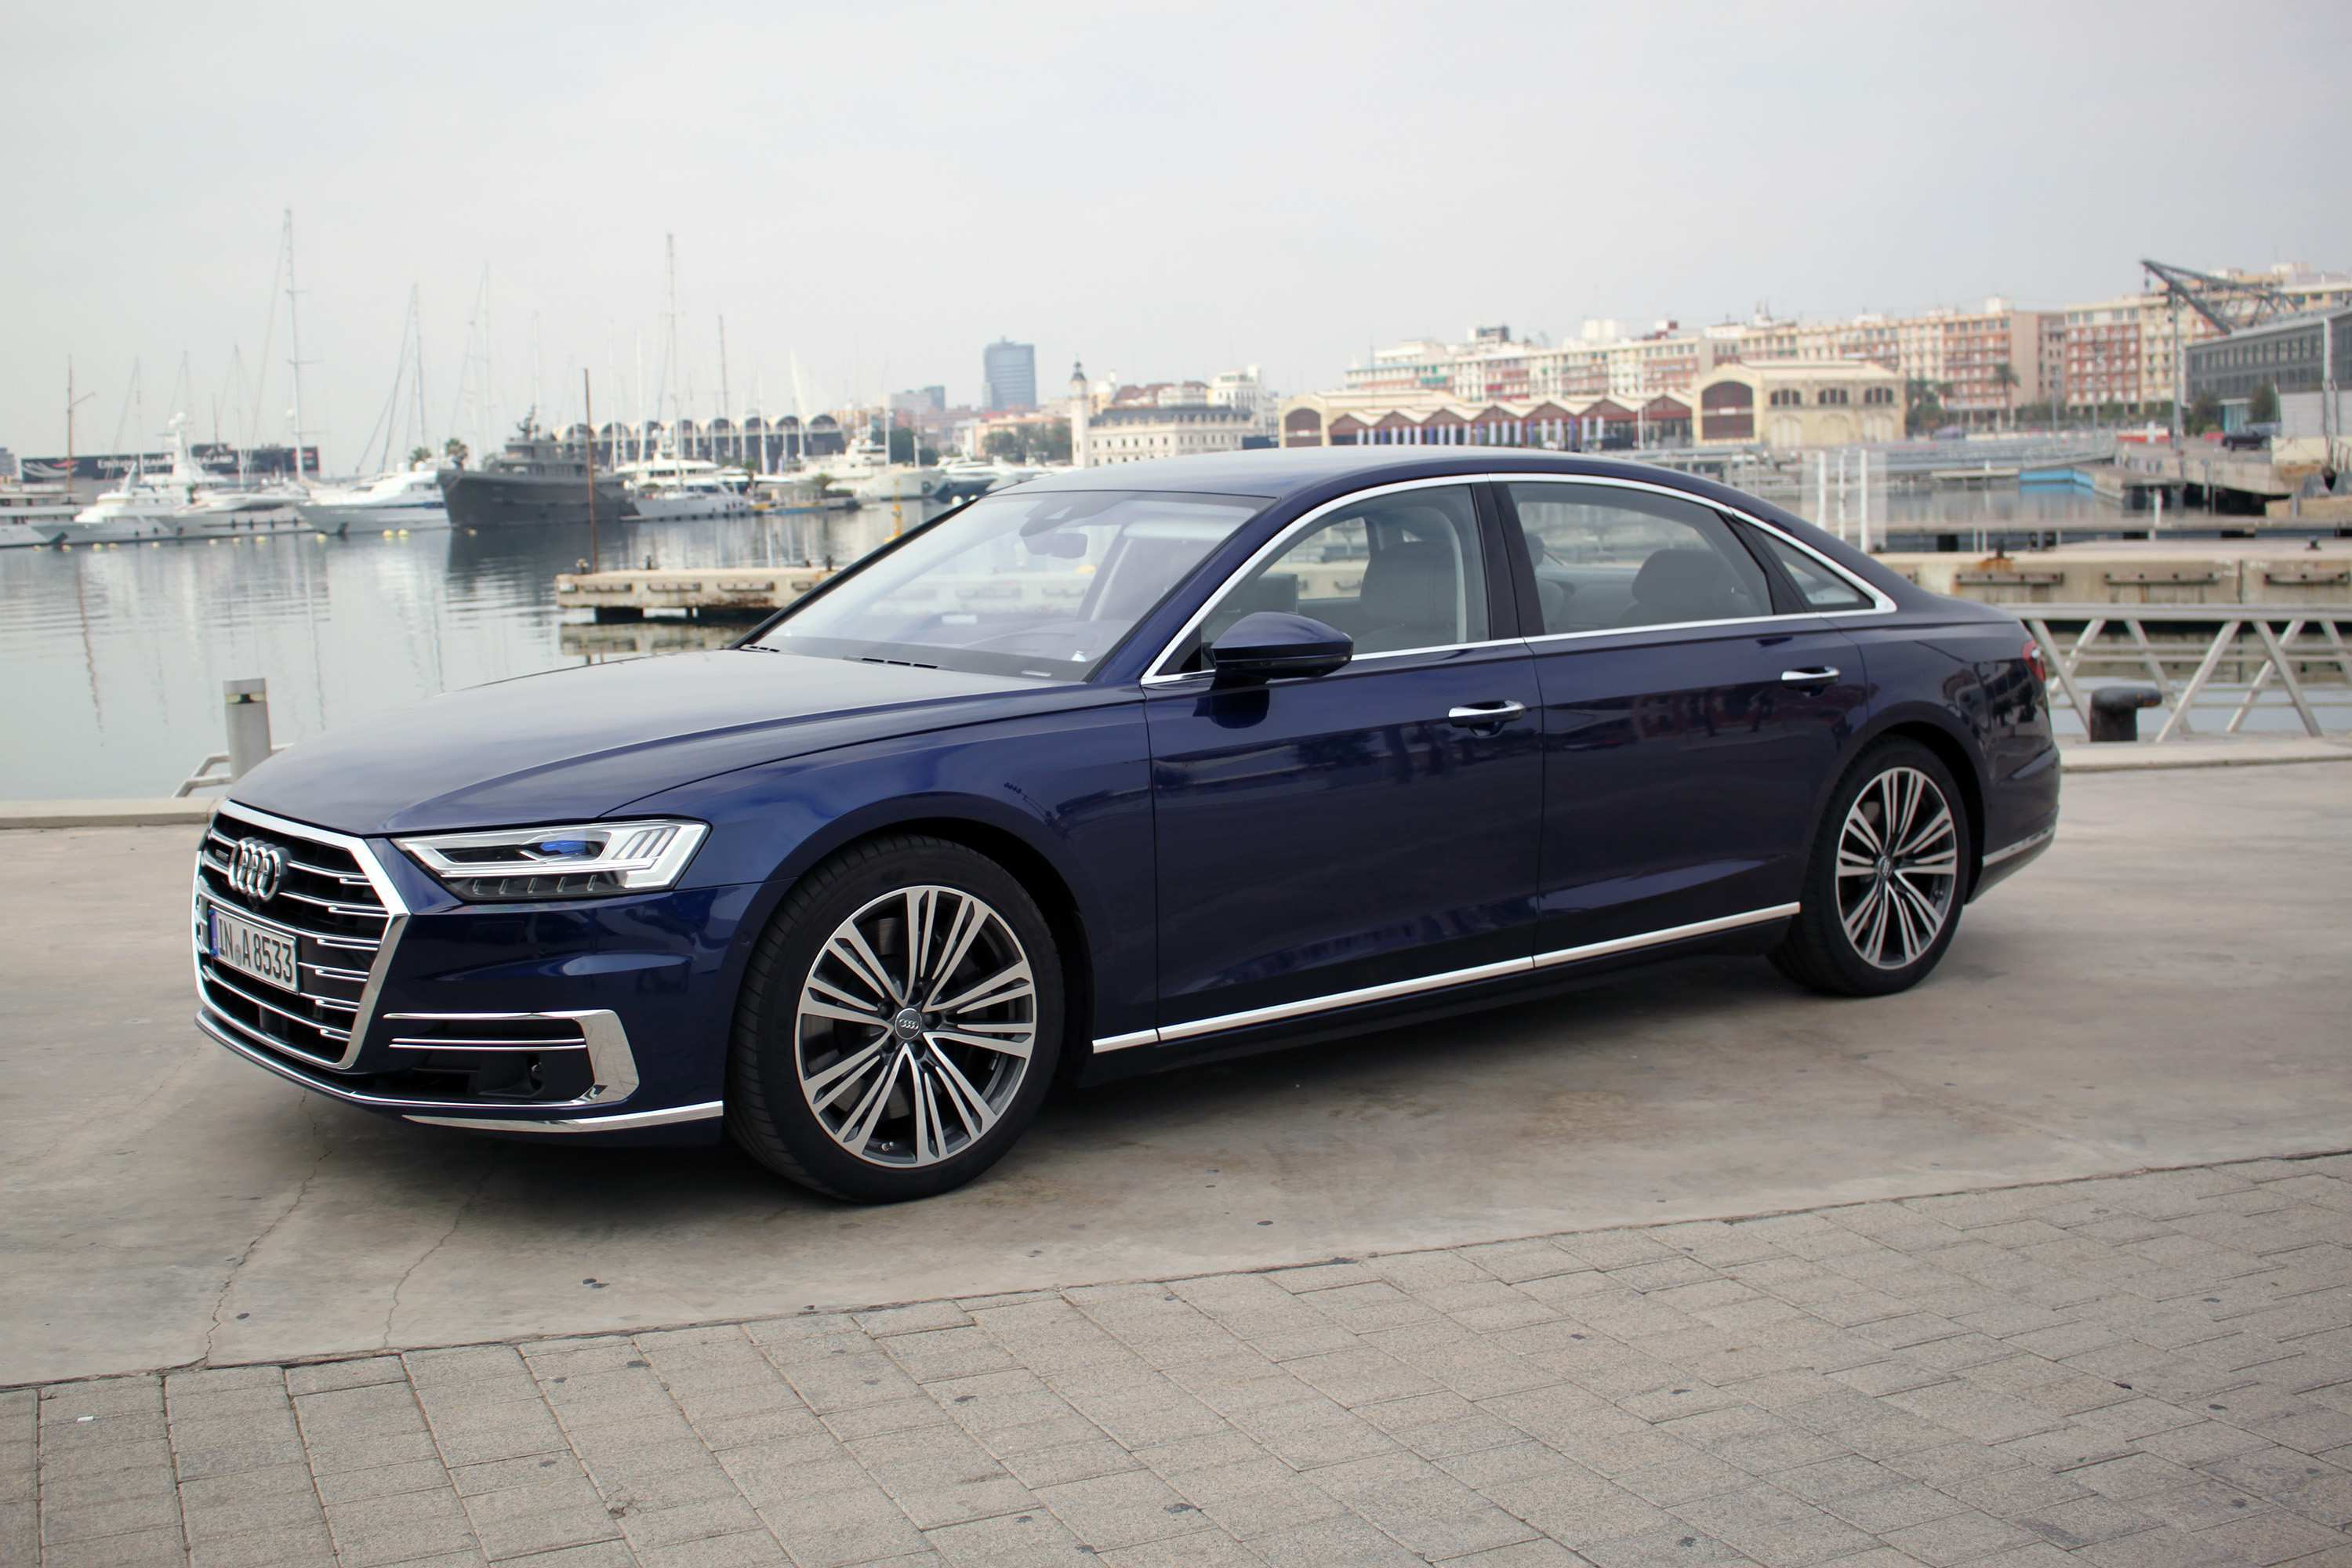 35 All New 2019 Audi A8 Debut Wallpaper for 2019 Audi A8 Debut